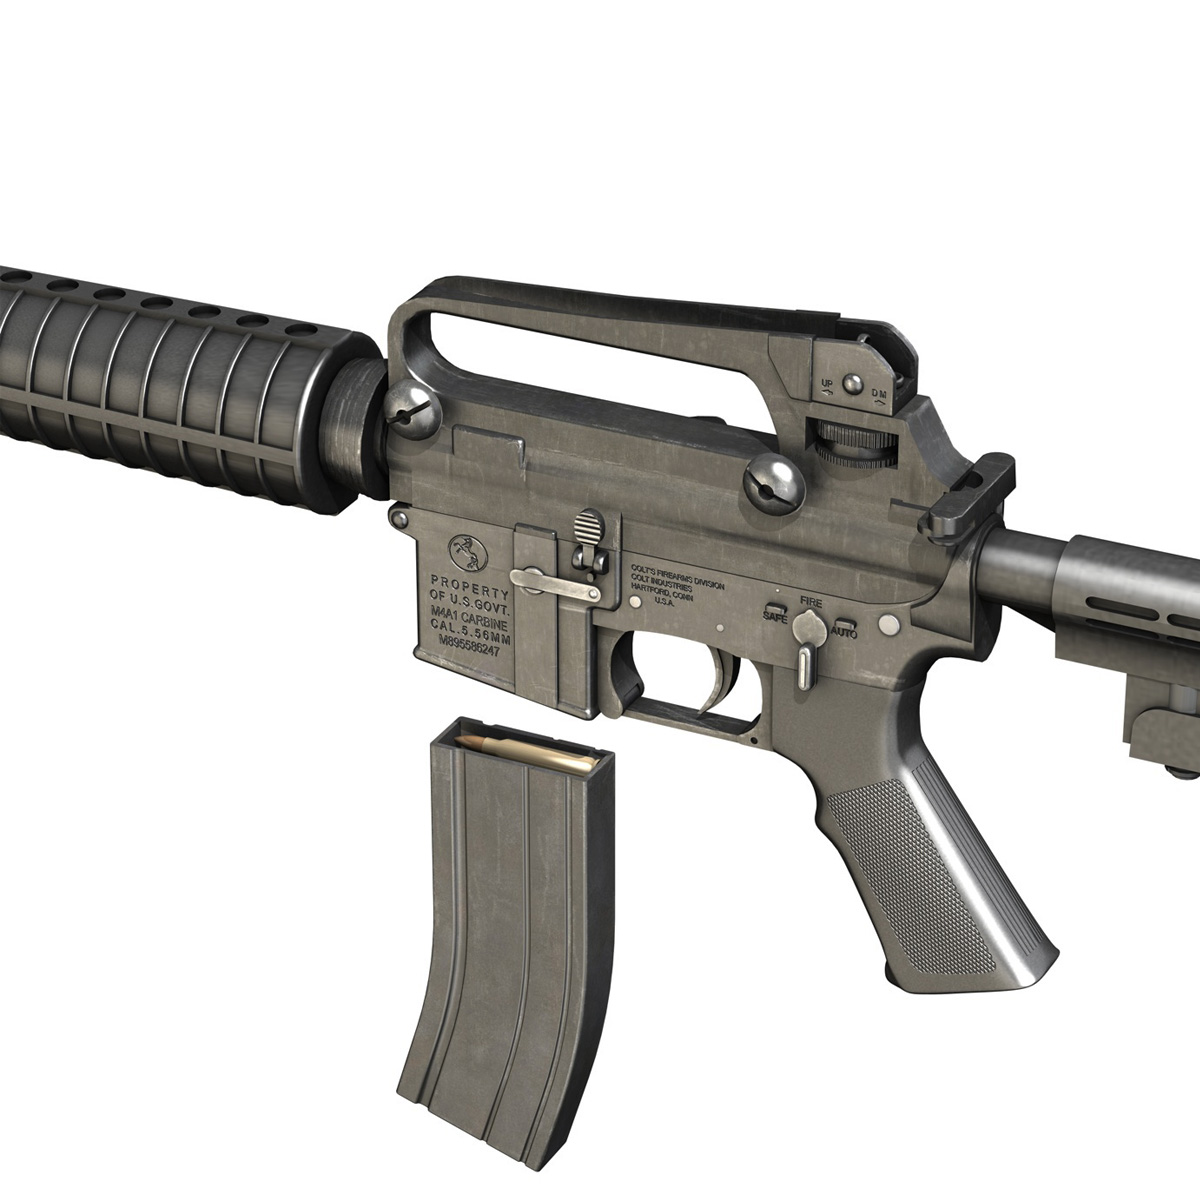 Colt M4A1 Carbine Assault Rifle 3D Model